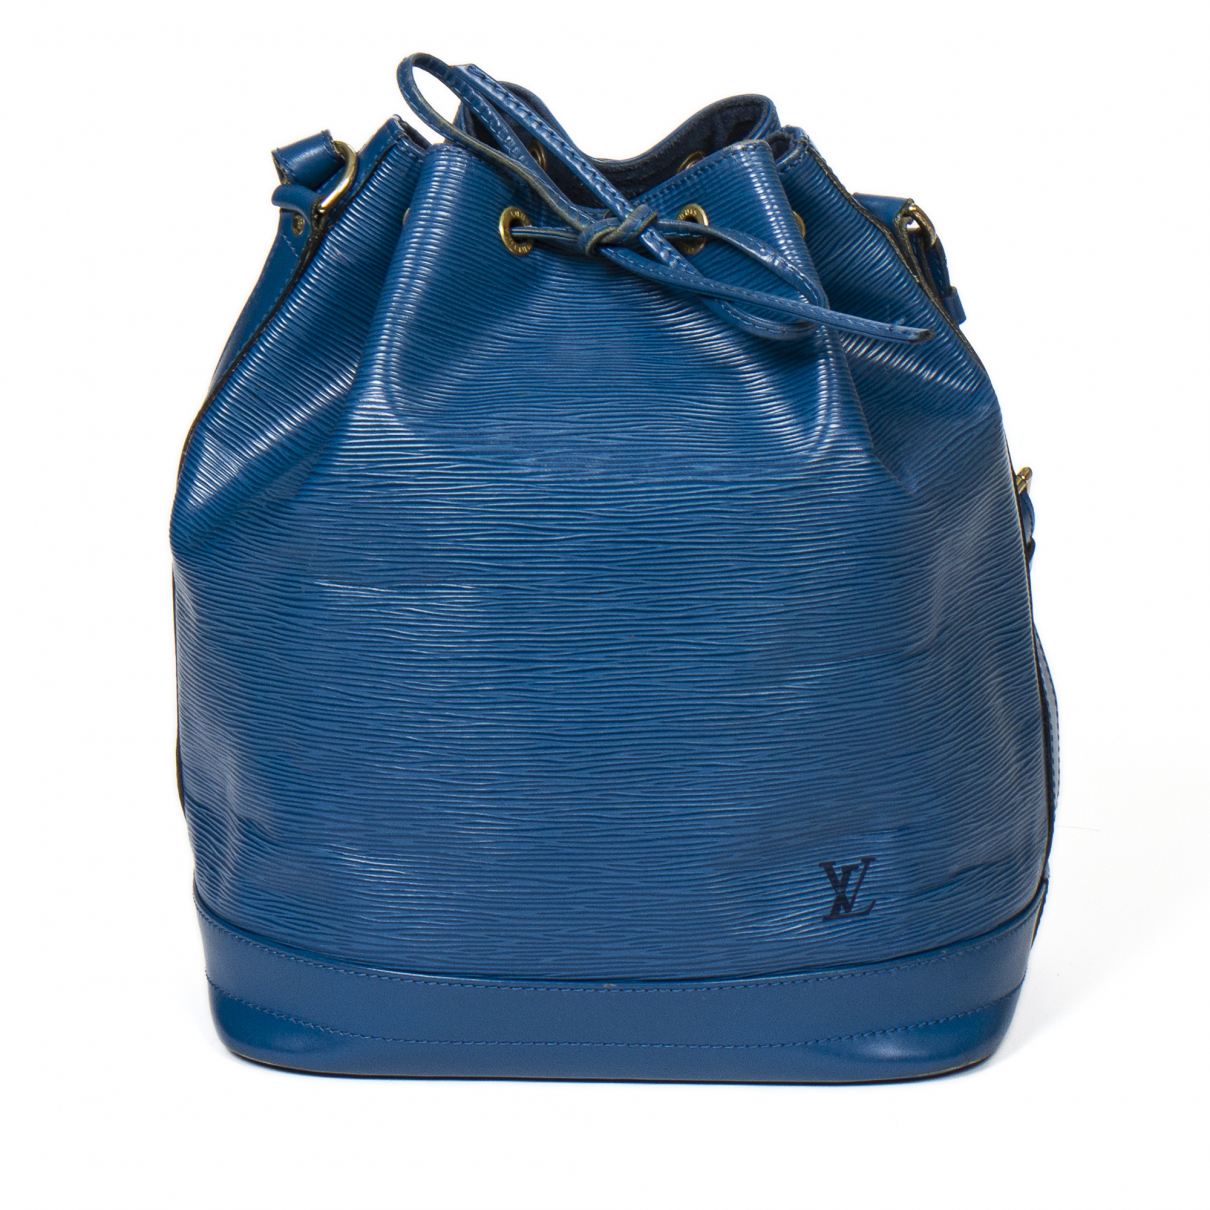 Louis Vuitton Noé Blue Leather handbag for Women \N